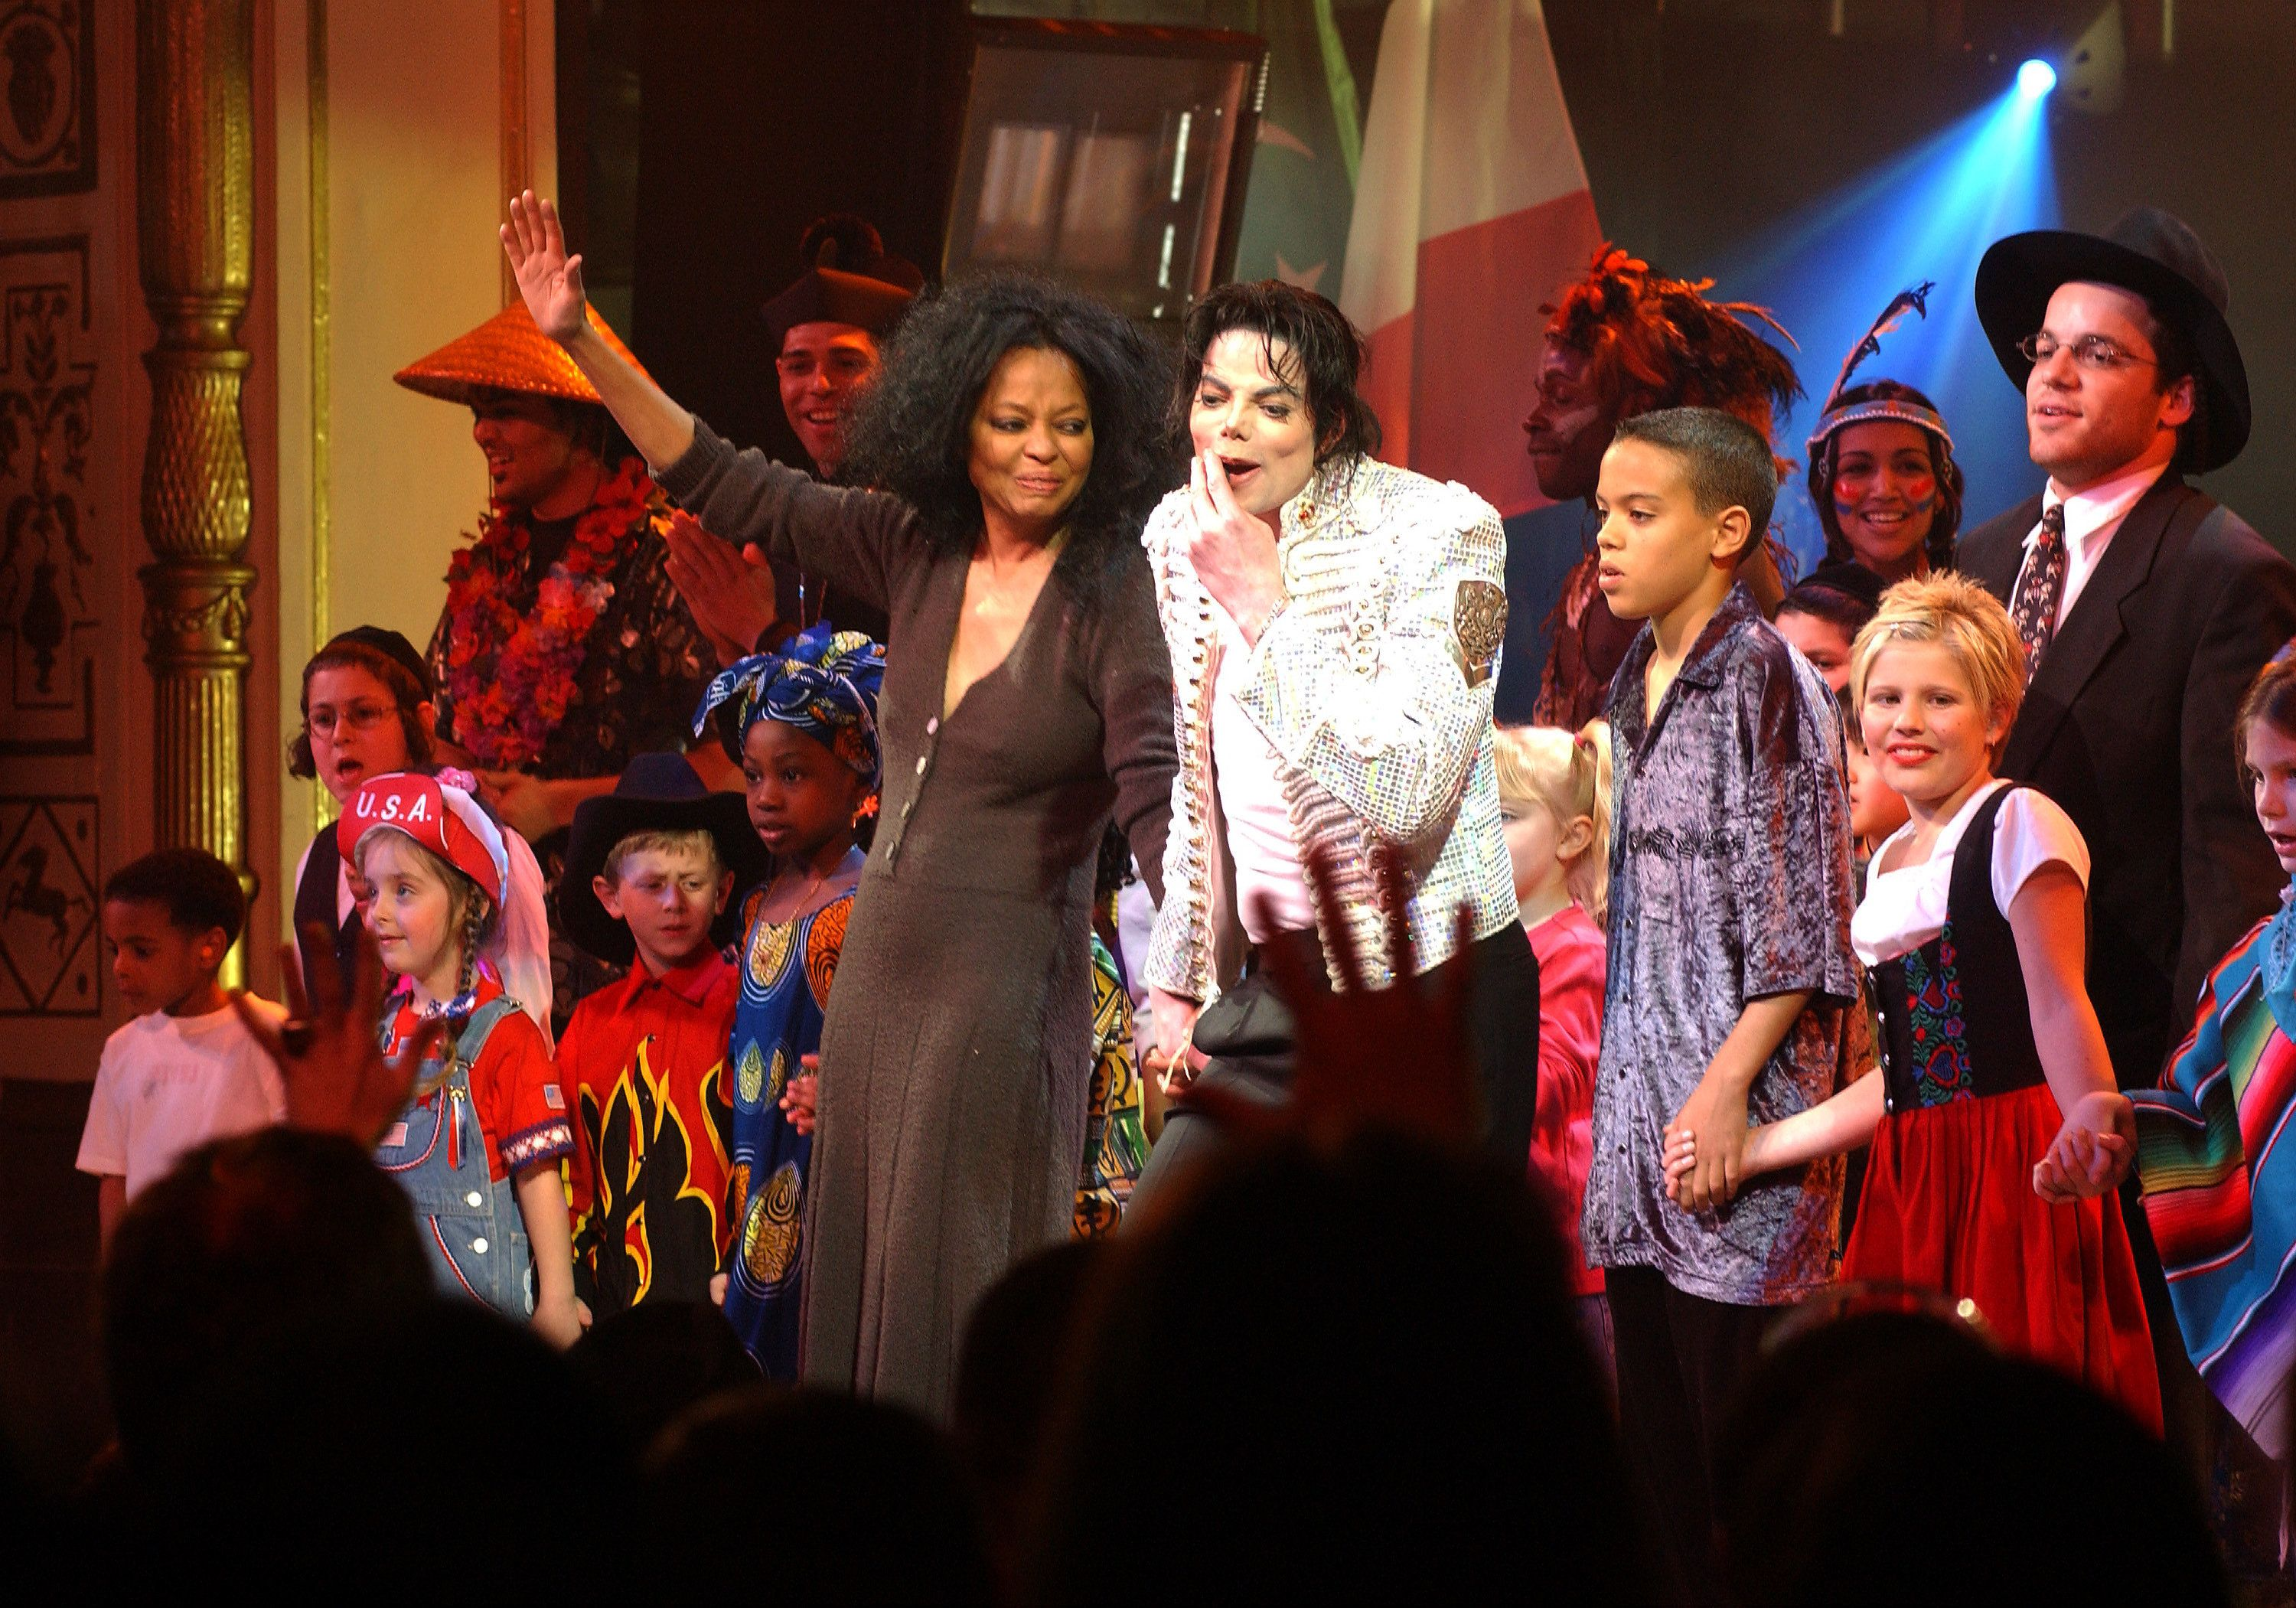 Diana Ross and Michael Jackson perform at a charity